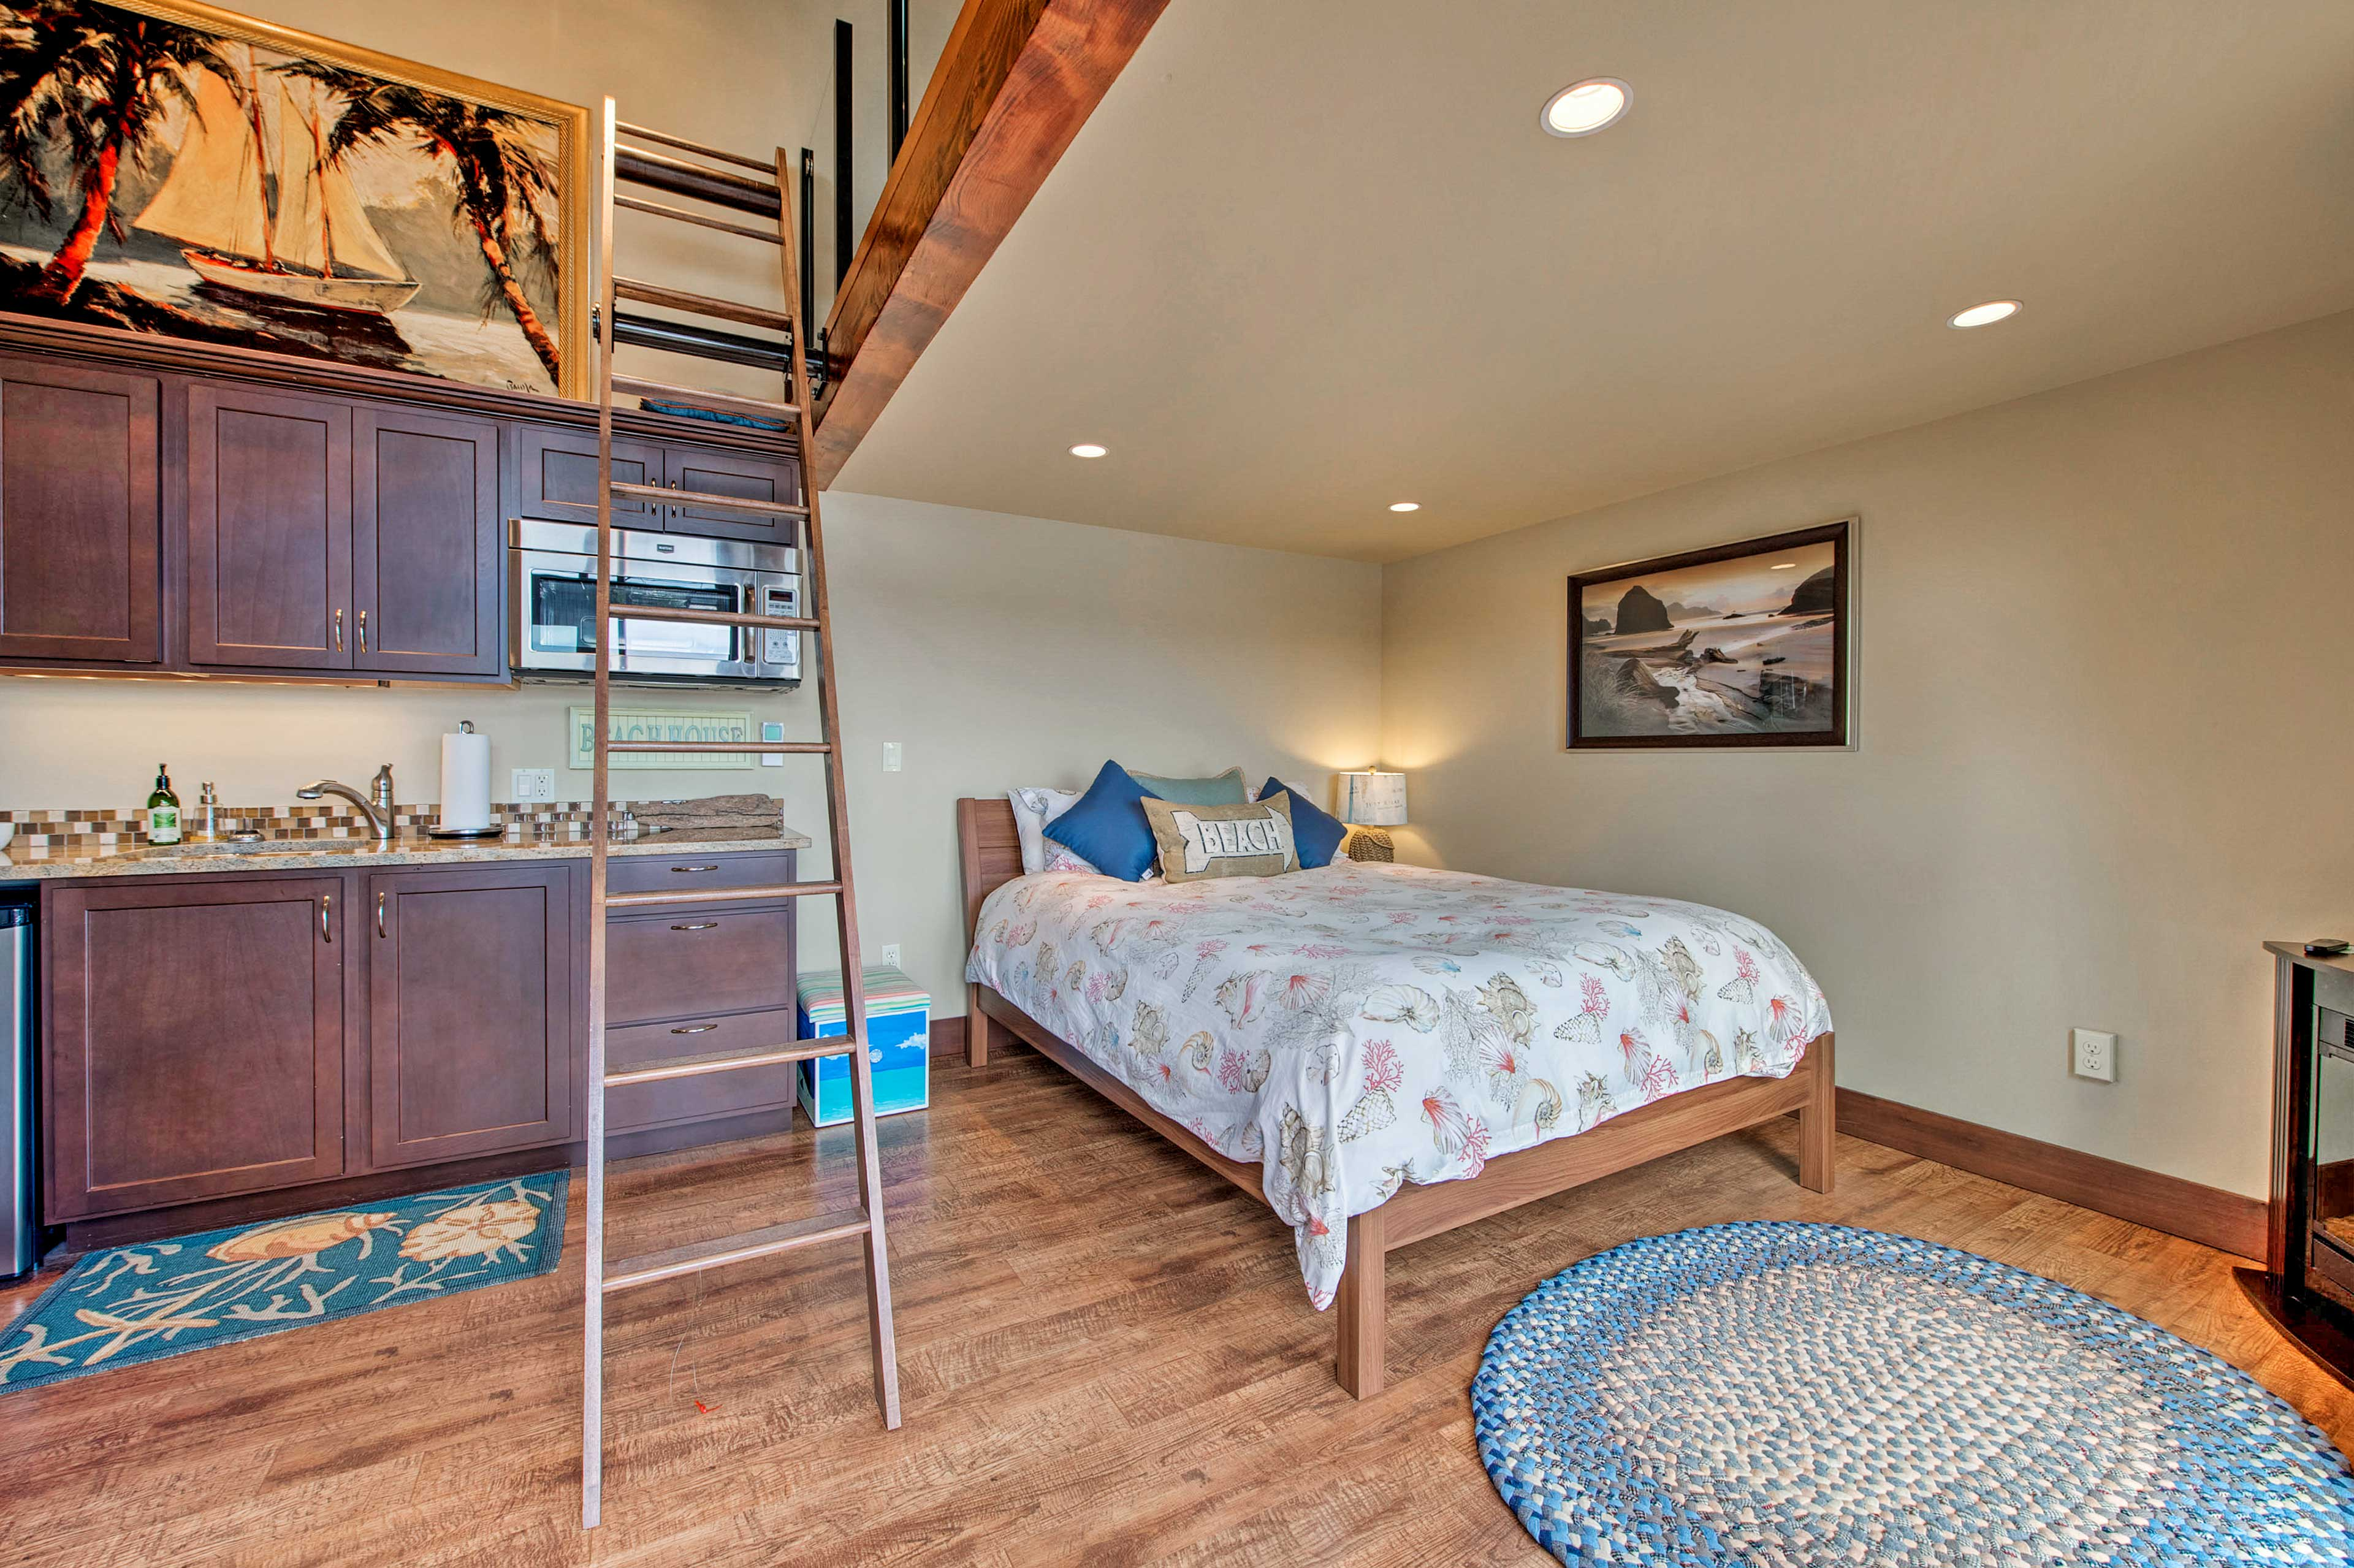 This room also has a lofted space with 2 twin beds.